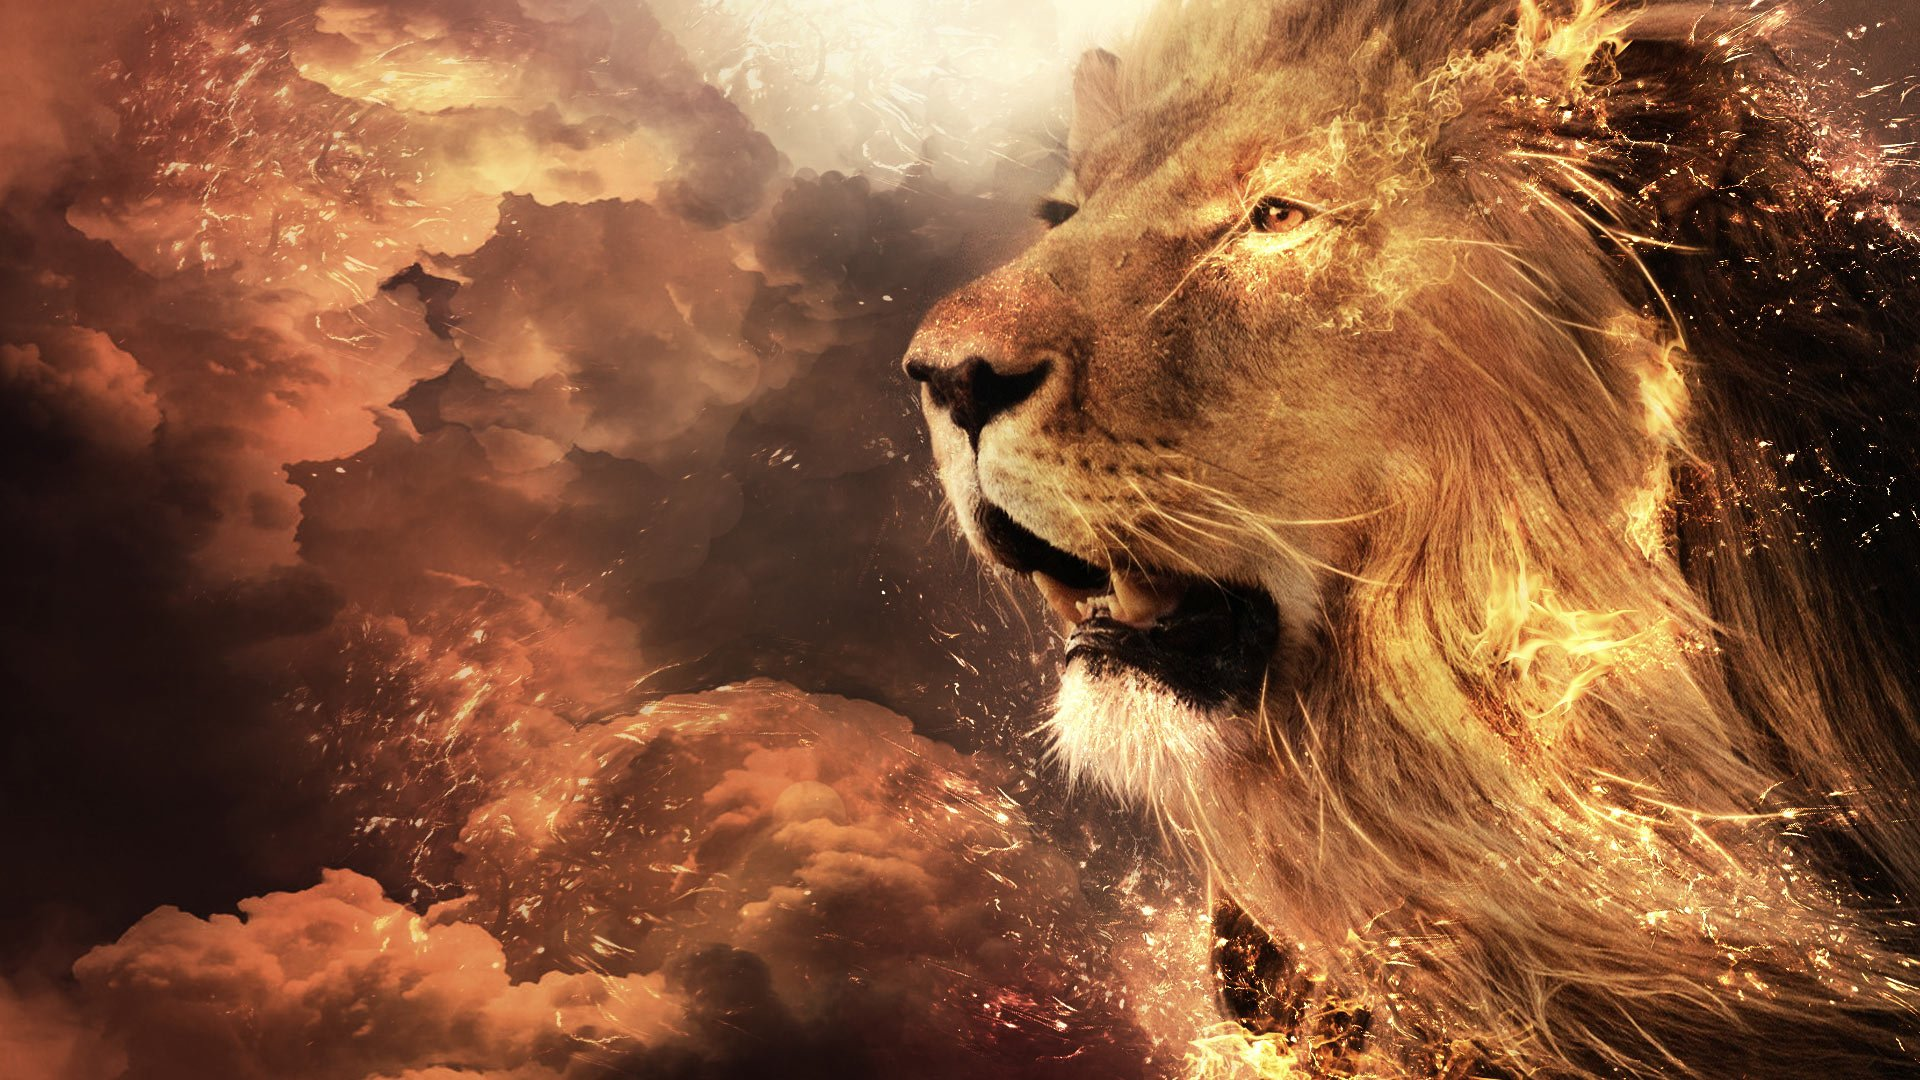 406 Lion HD Wallpapers | Backgrounds - Wallpaper Abyss